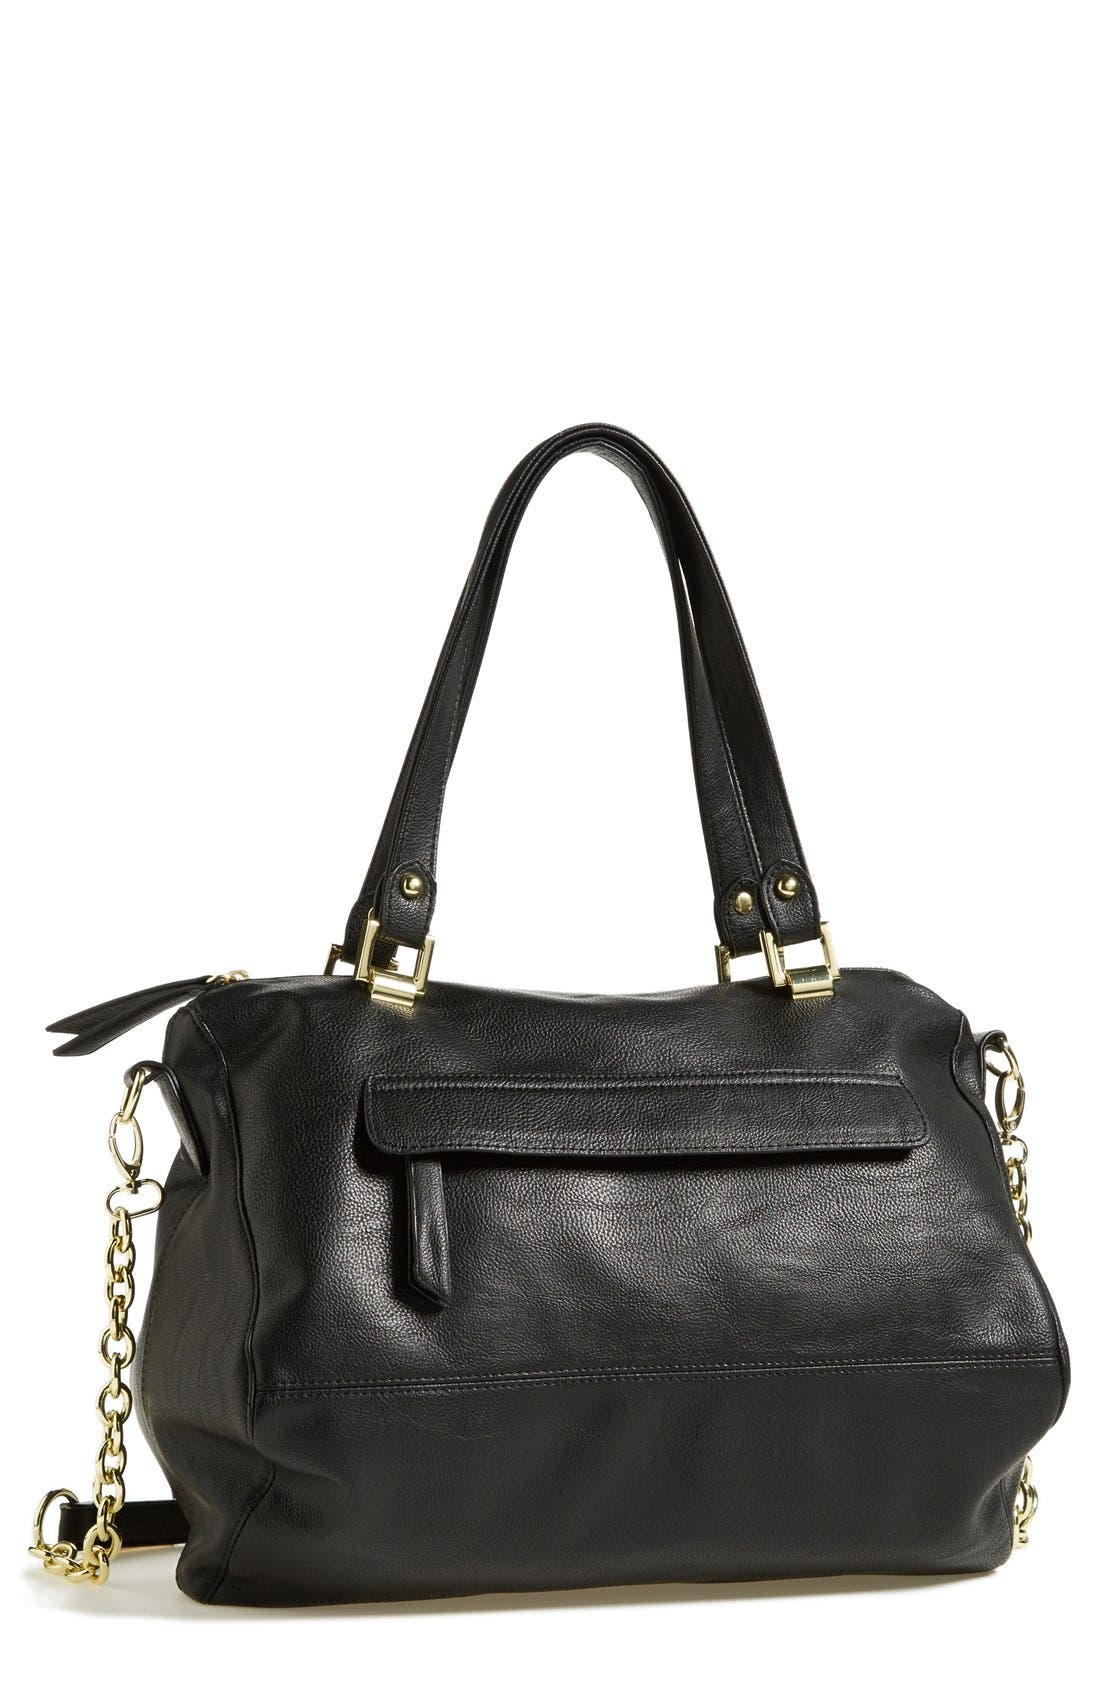 Alternate Image 1 Selected - KENDALL + KYLIE Madden Girl Convertible Large Crossbody Bag (Juniors)